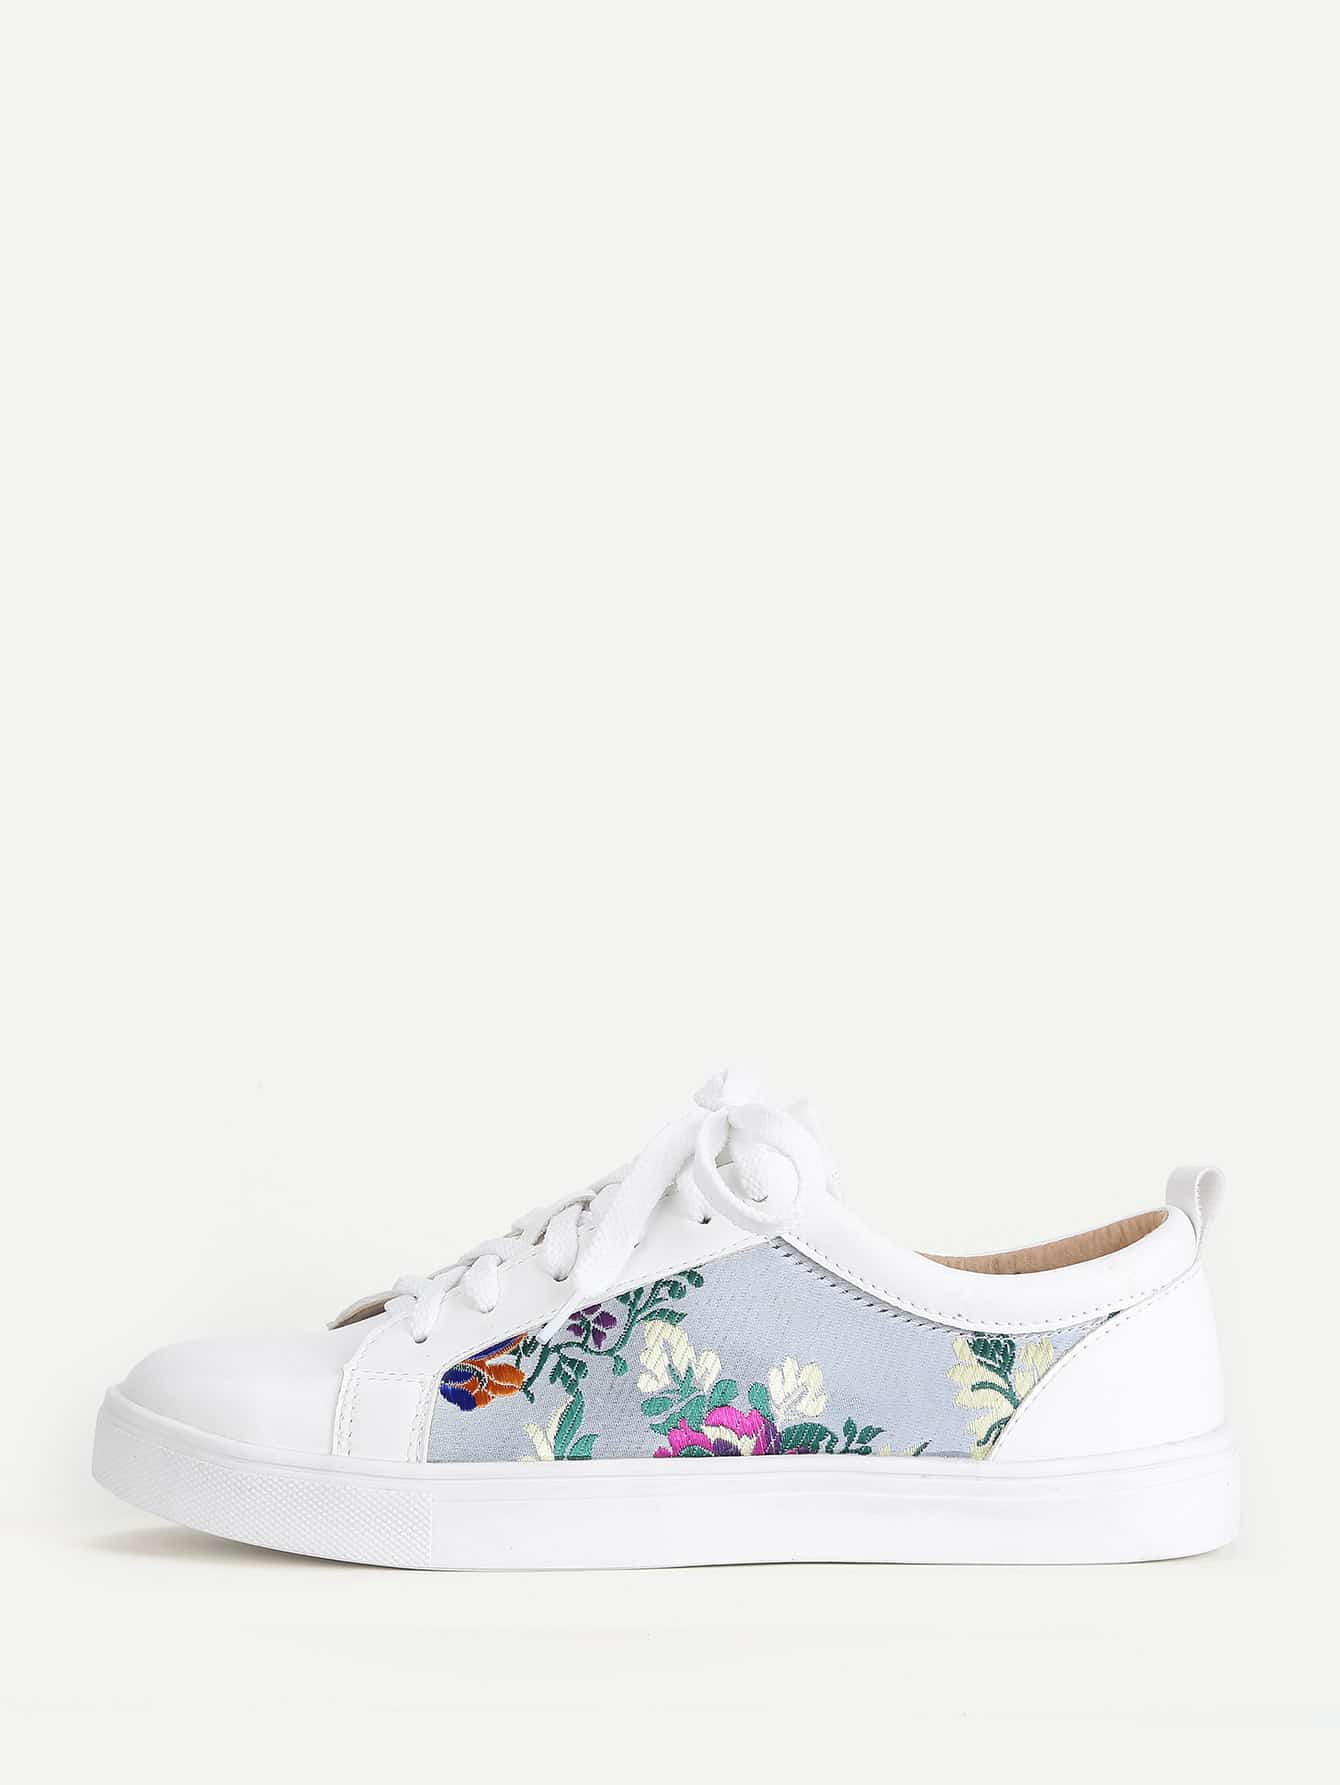 Flower Embroidery Lace Up Trainers woven detail lace up trainers